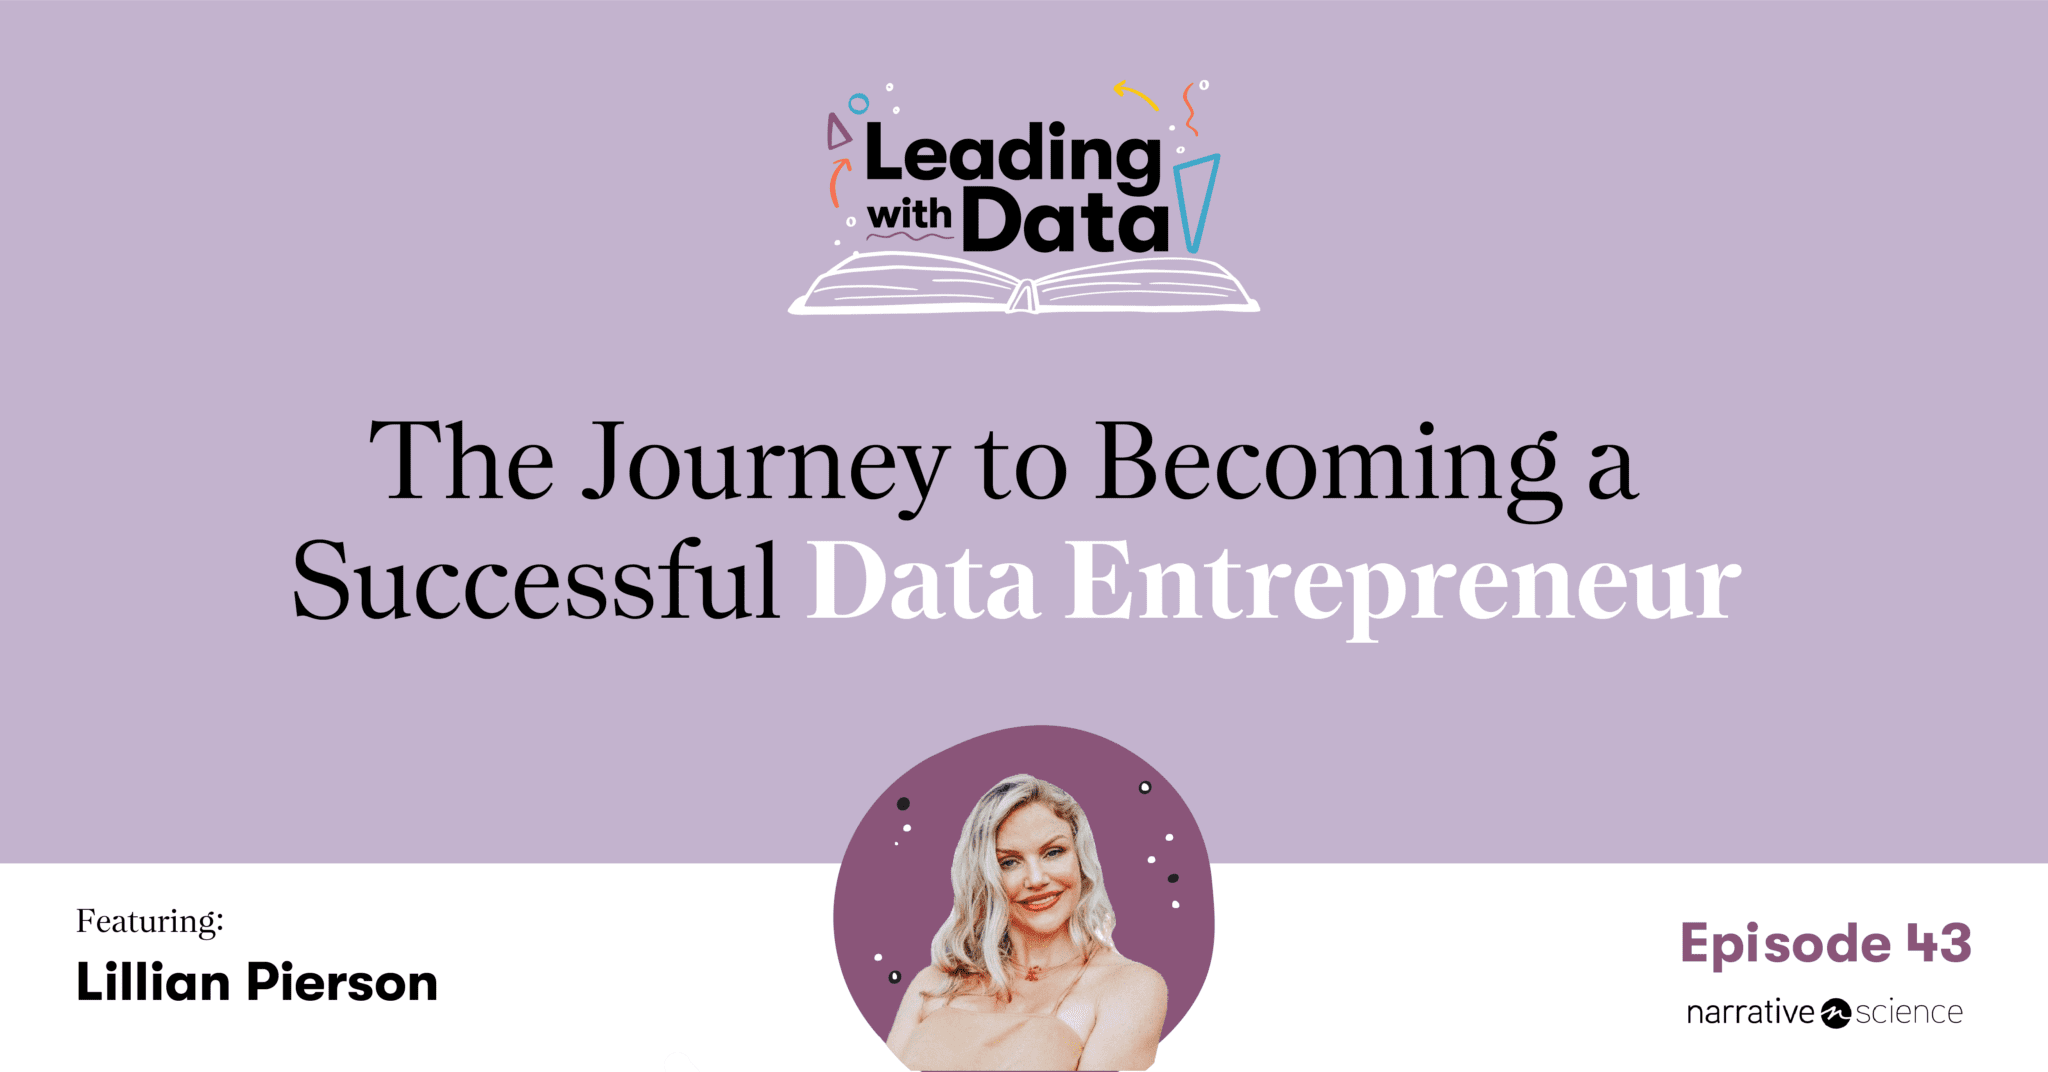 Leading with Data Podcast: The Journey to Becoming a Successful Data Entrepreneur